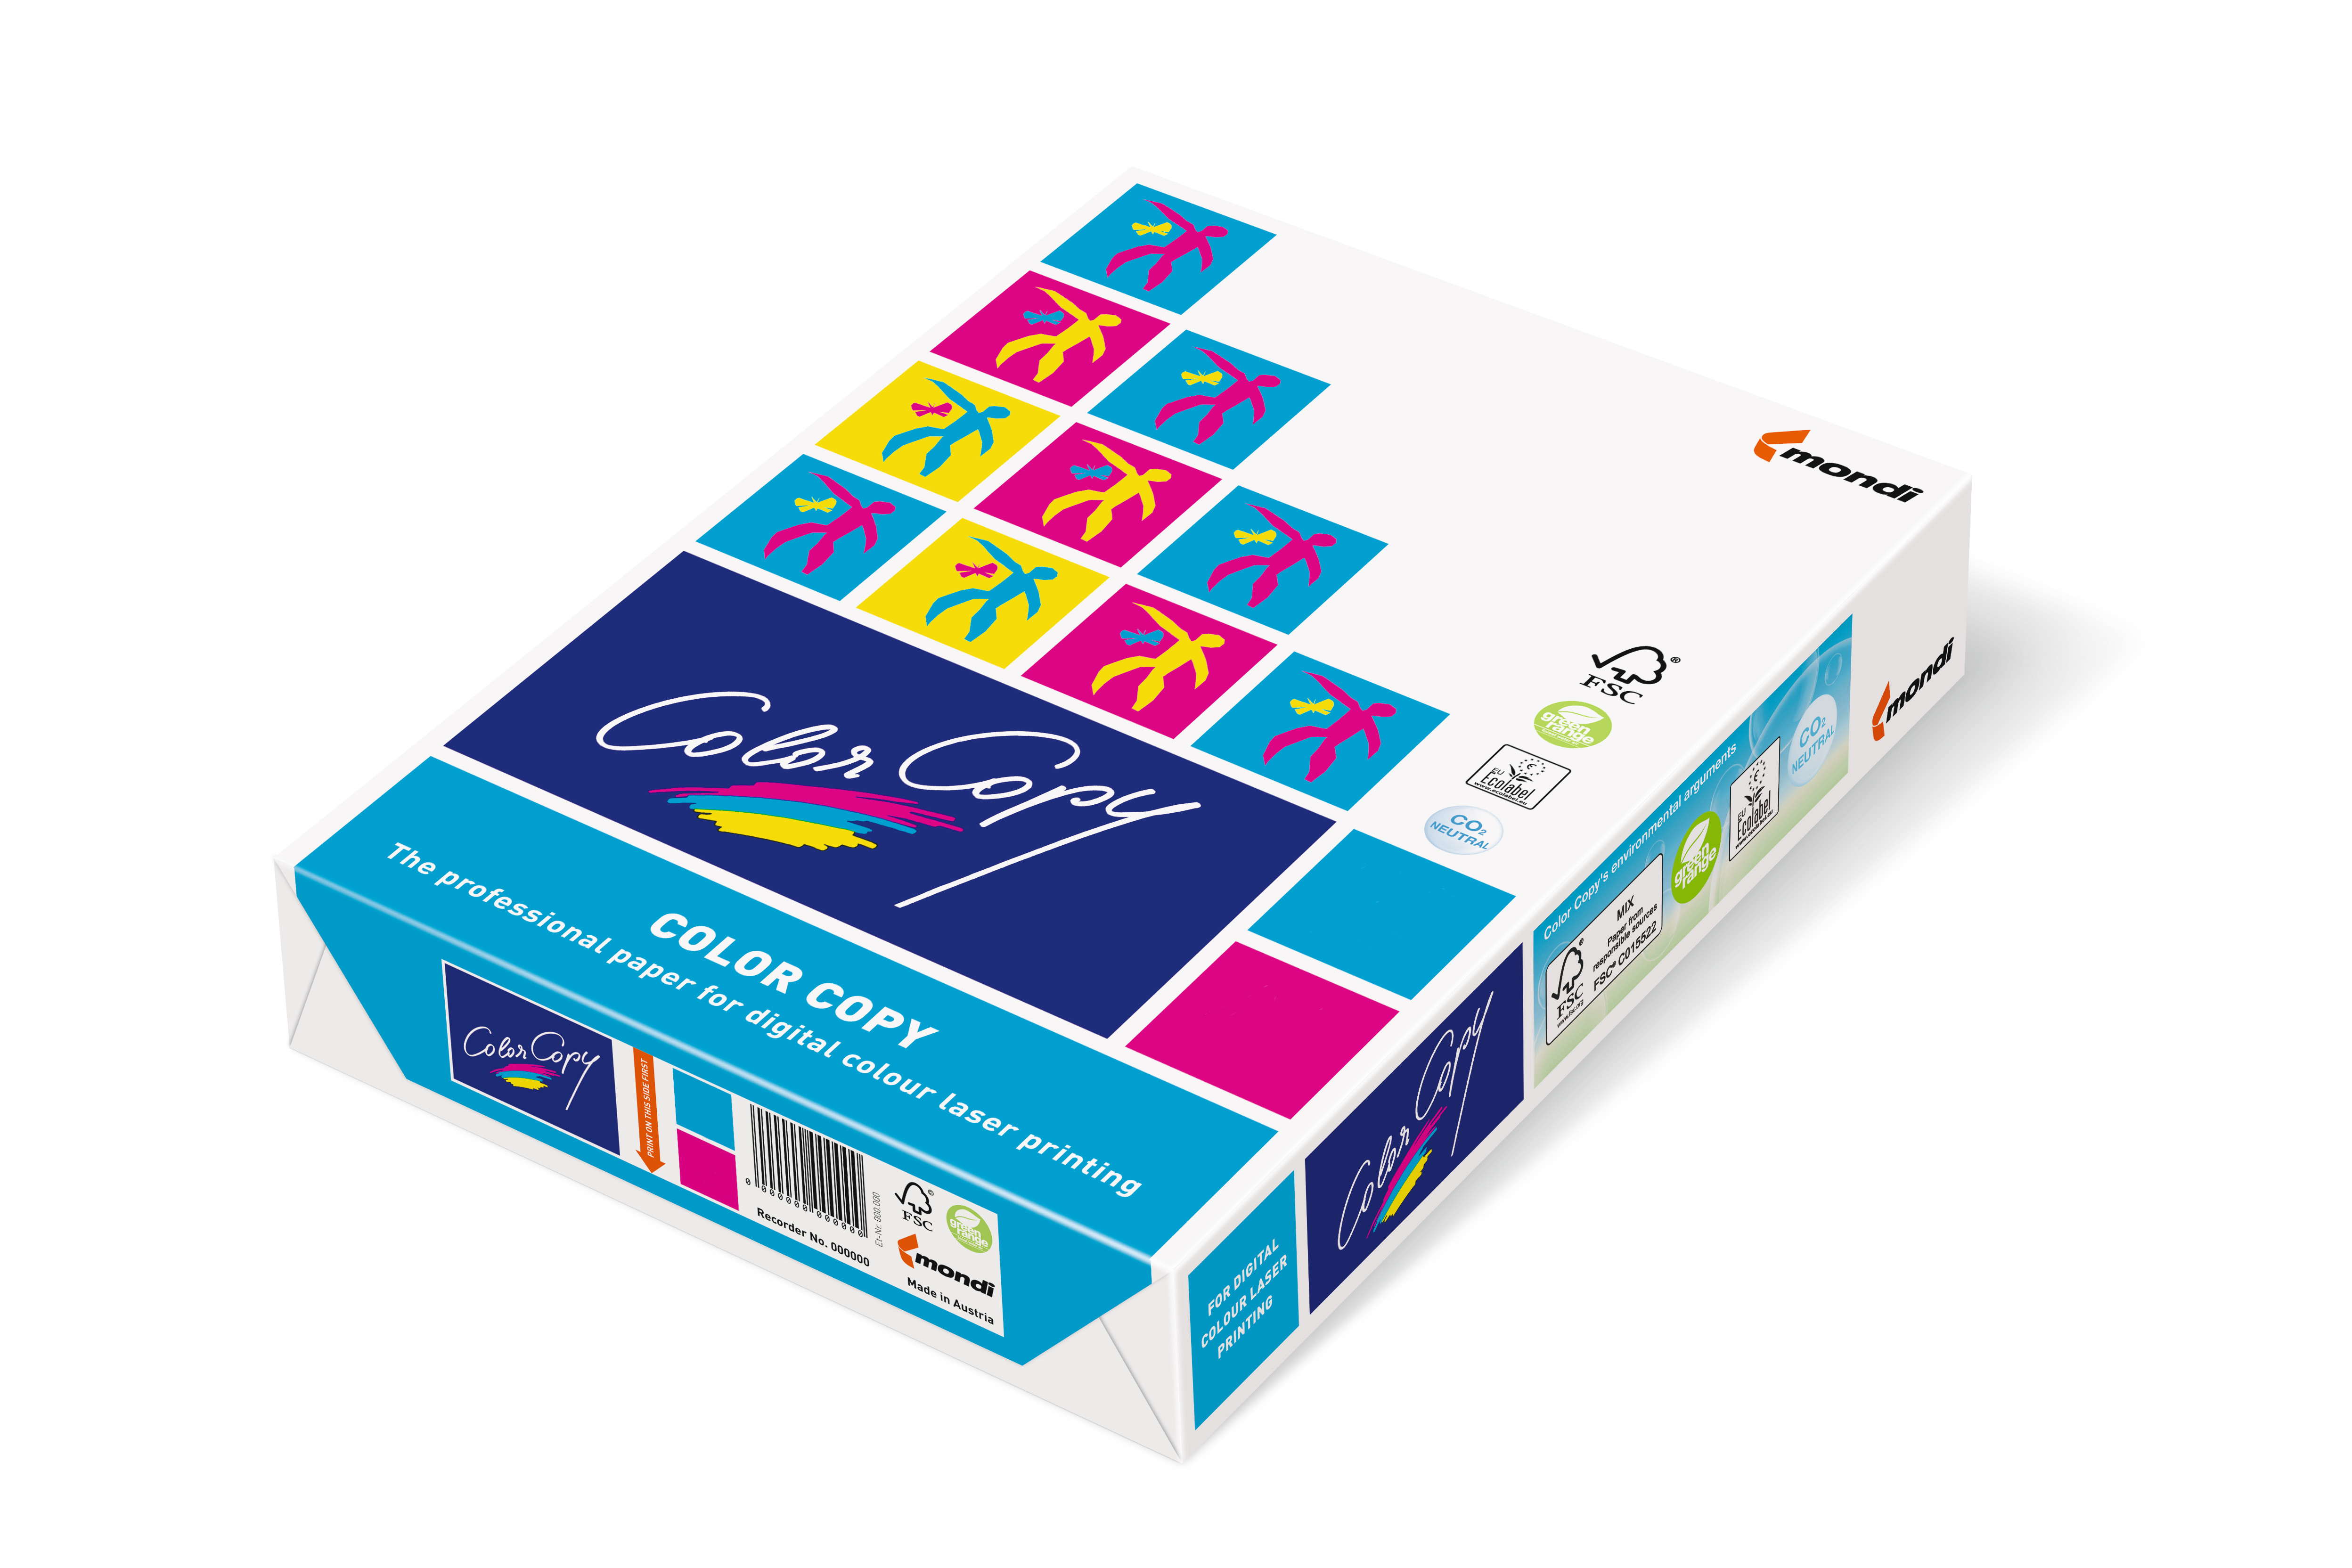 Mondi Color Copy Papier 100g/m² DIN-A5 - 1.000 Blatt